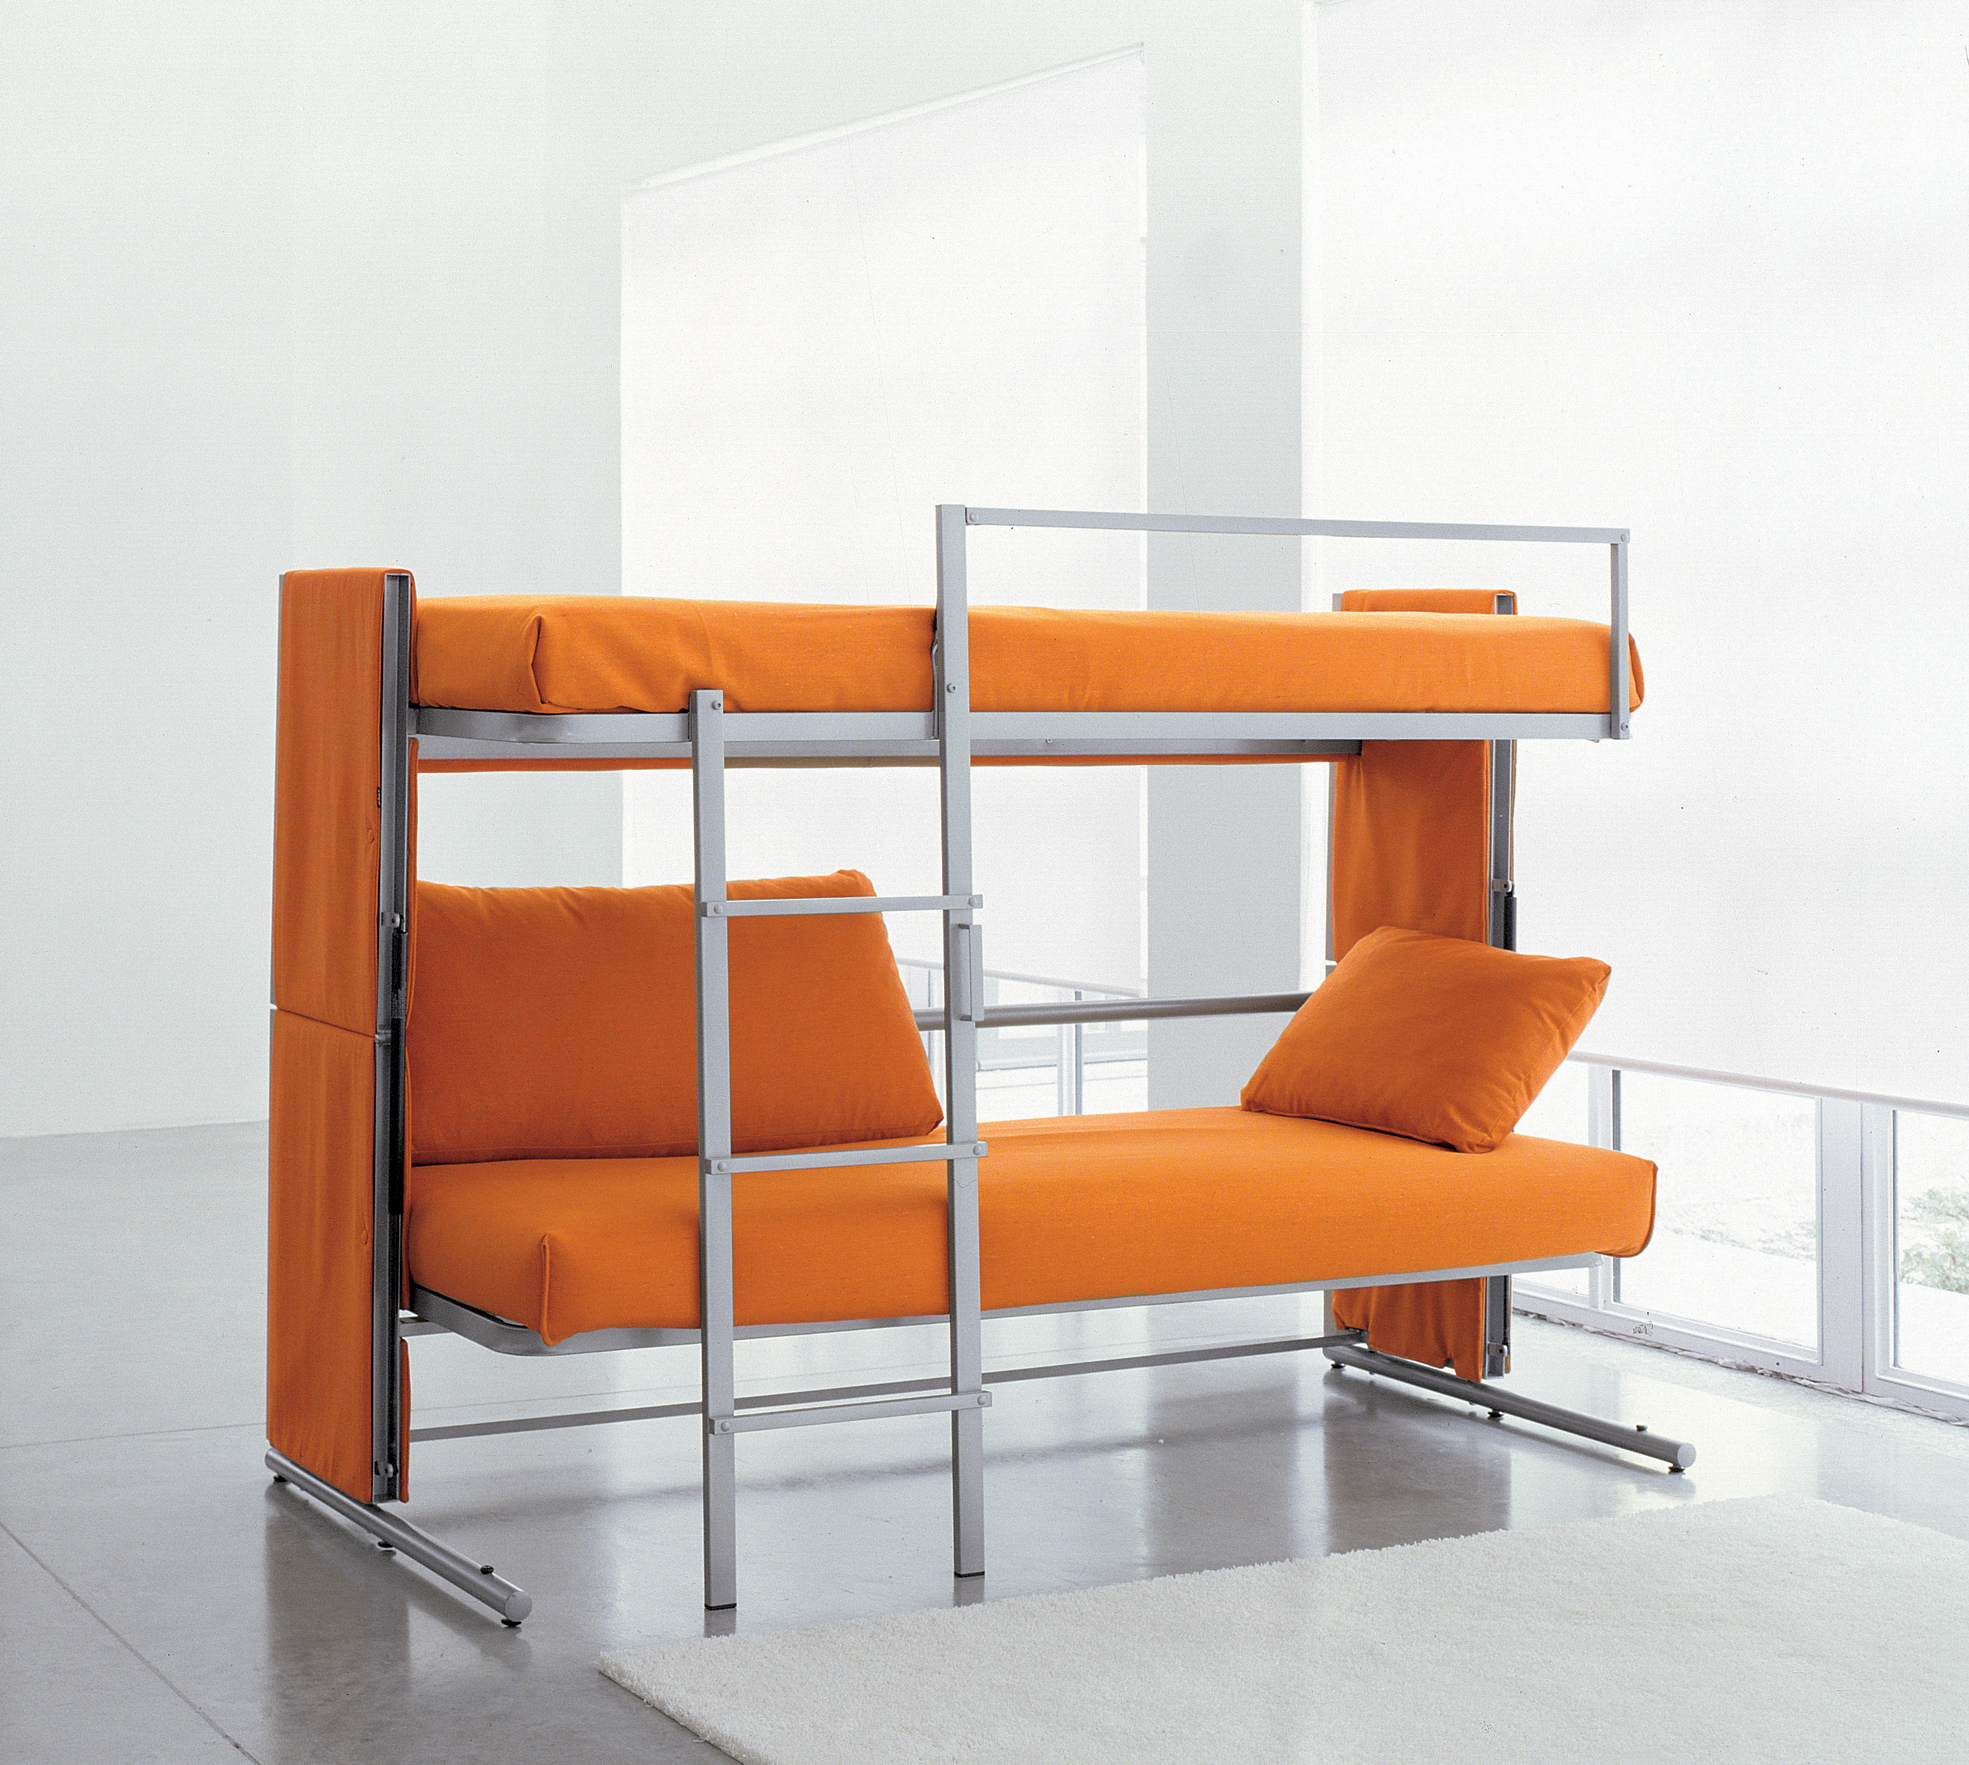 10 folding furniture designs great space savers and always good to